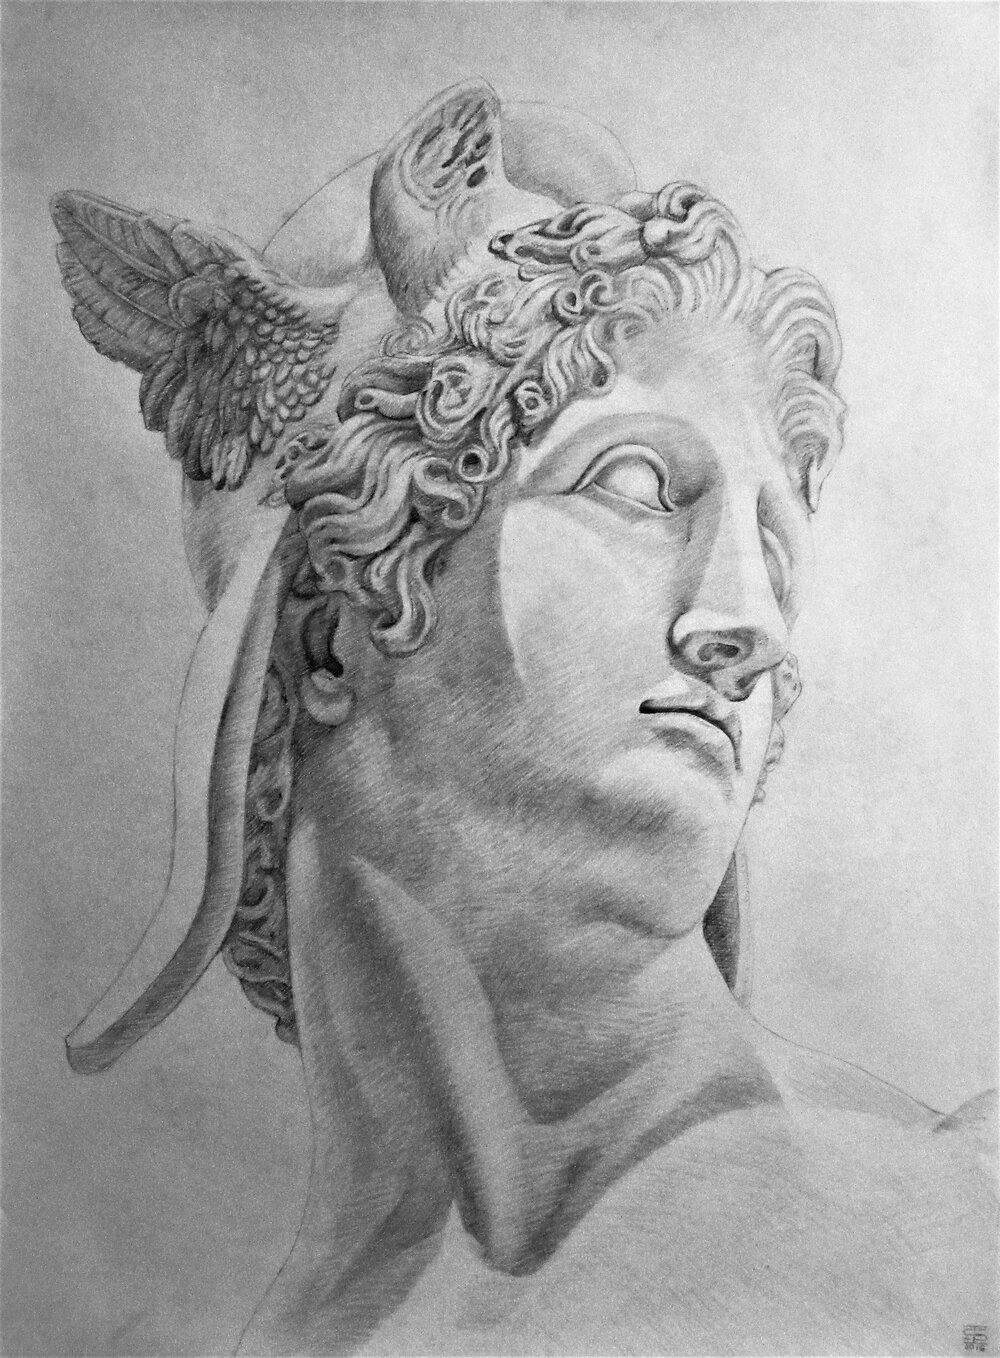 Canova 3, 2016, pencil on paper, 22 x 30""